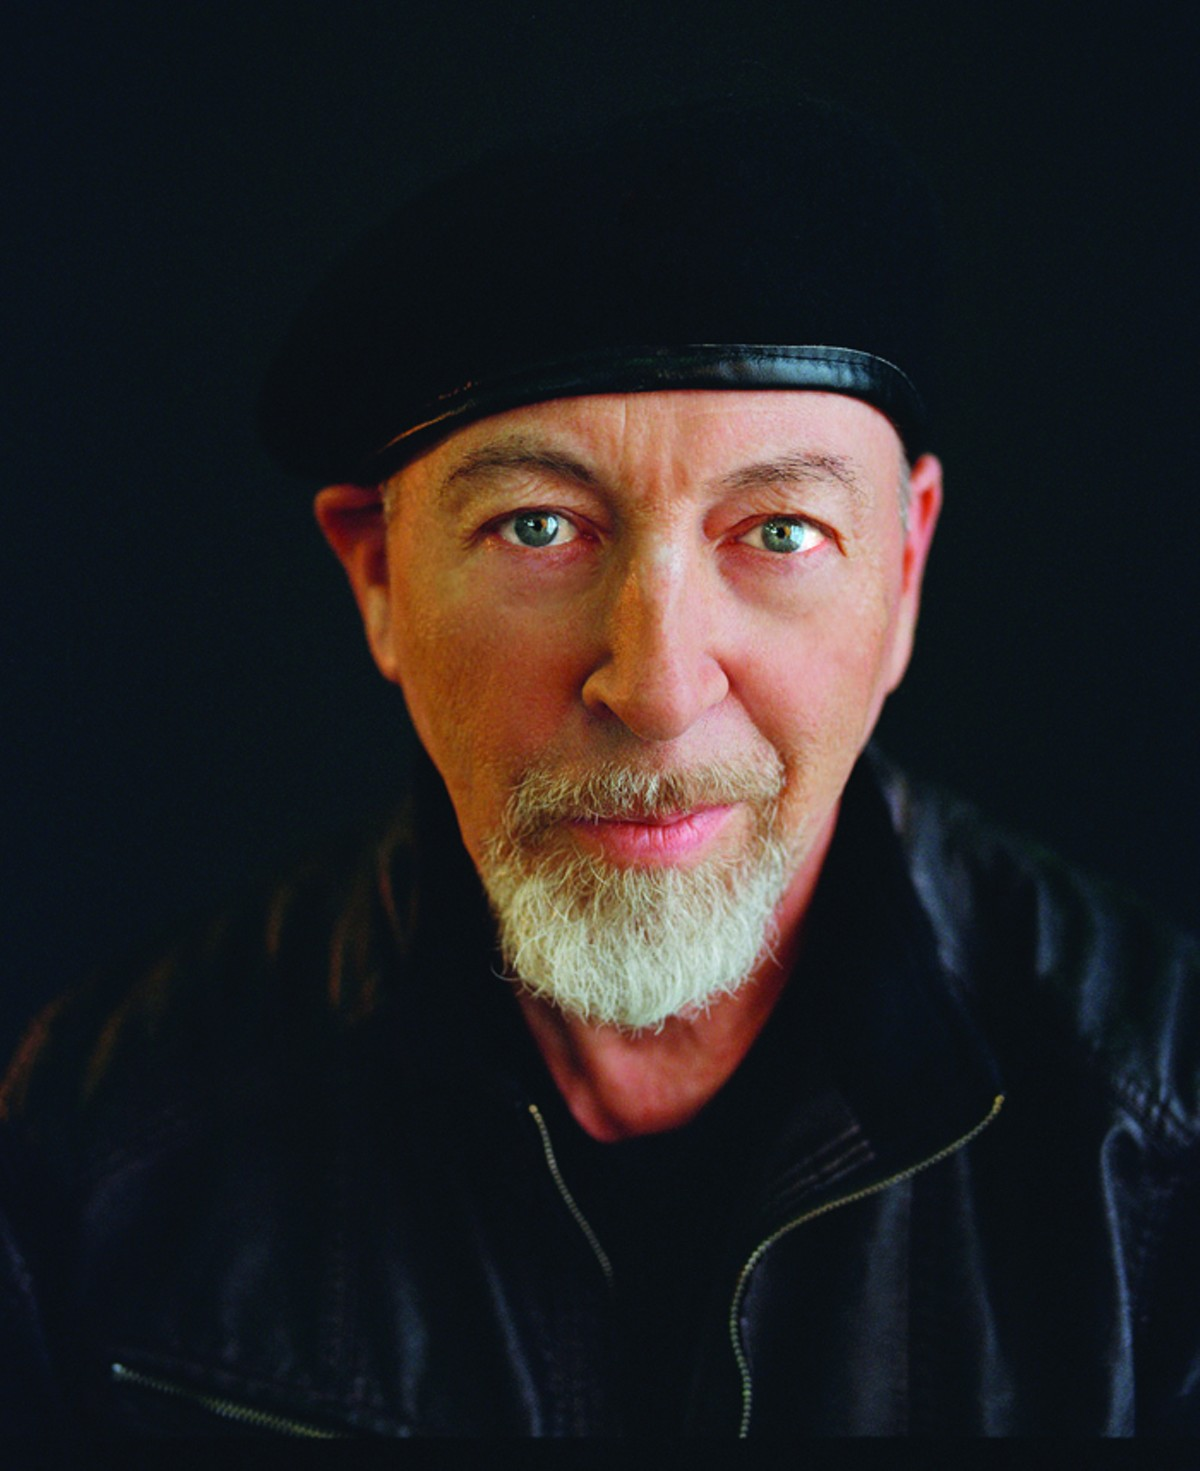 richard_thompson_photocredit_pamela_littky_generalpress1_1_.jpg